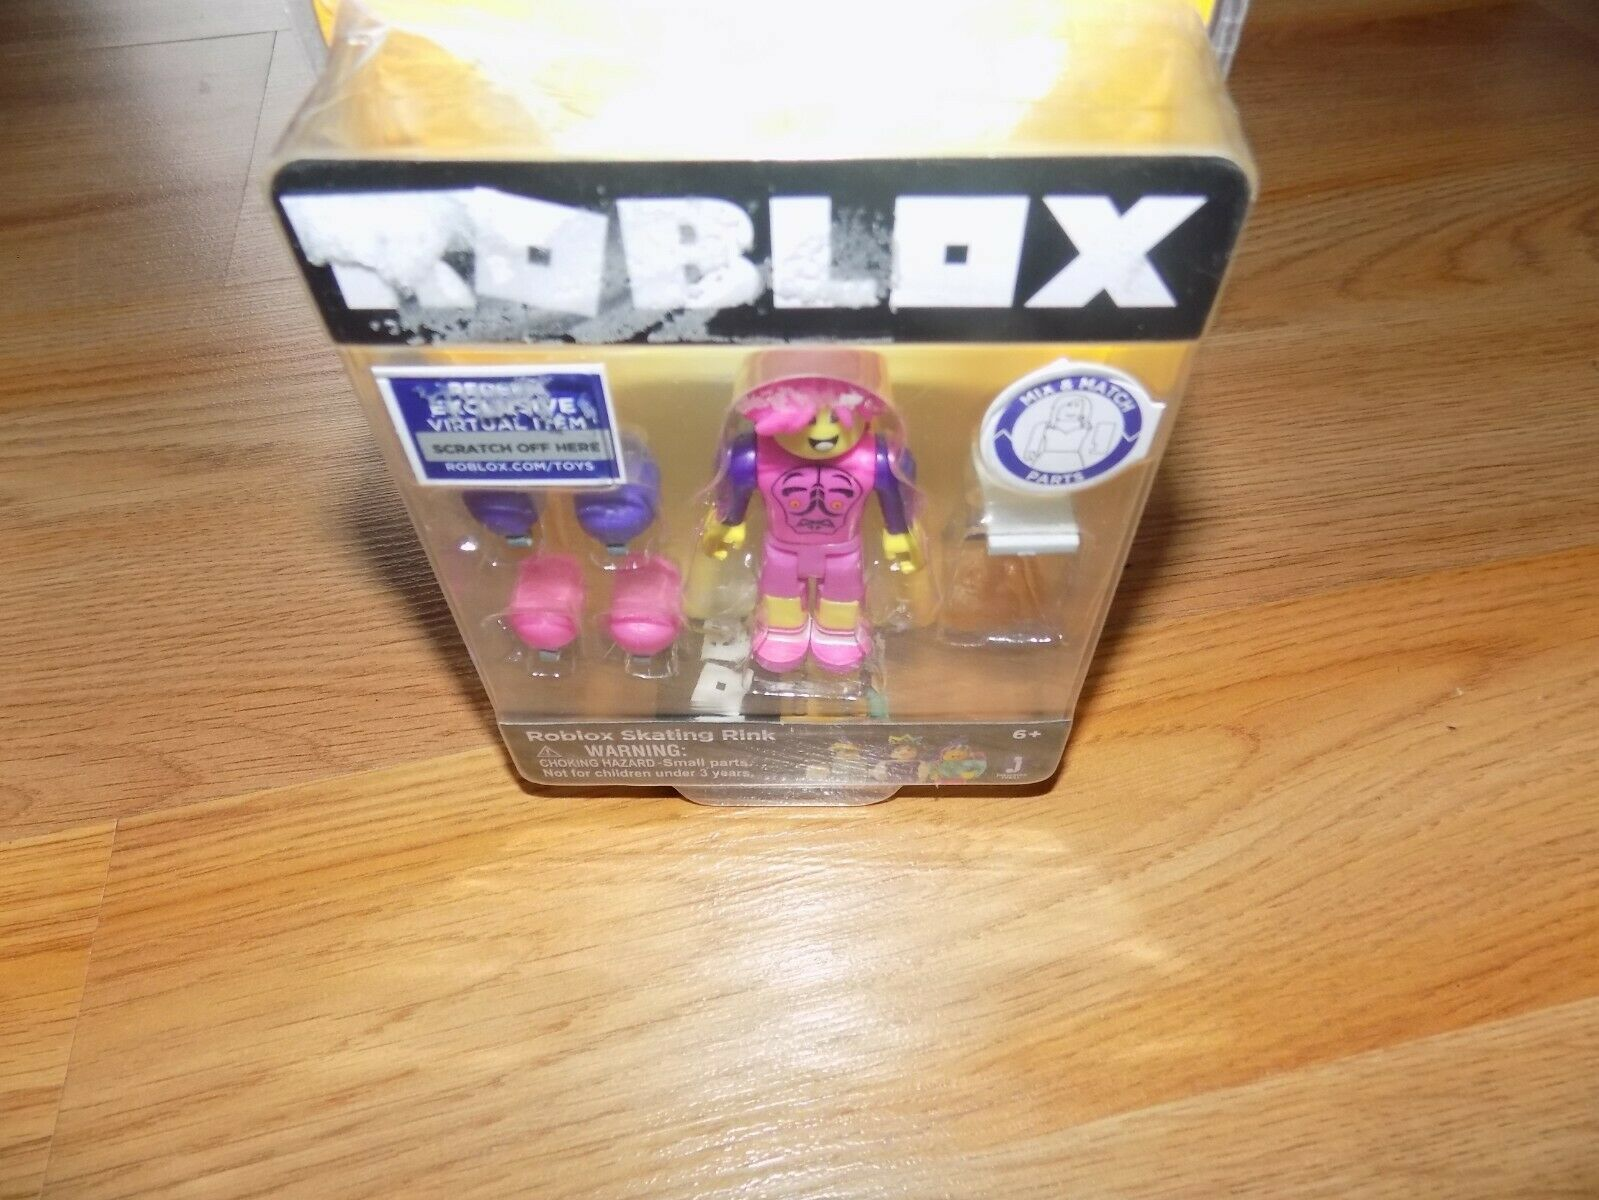 Roblox Skating Rink Action Figure Toy Mix & and 50 similar items